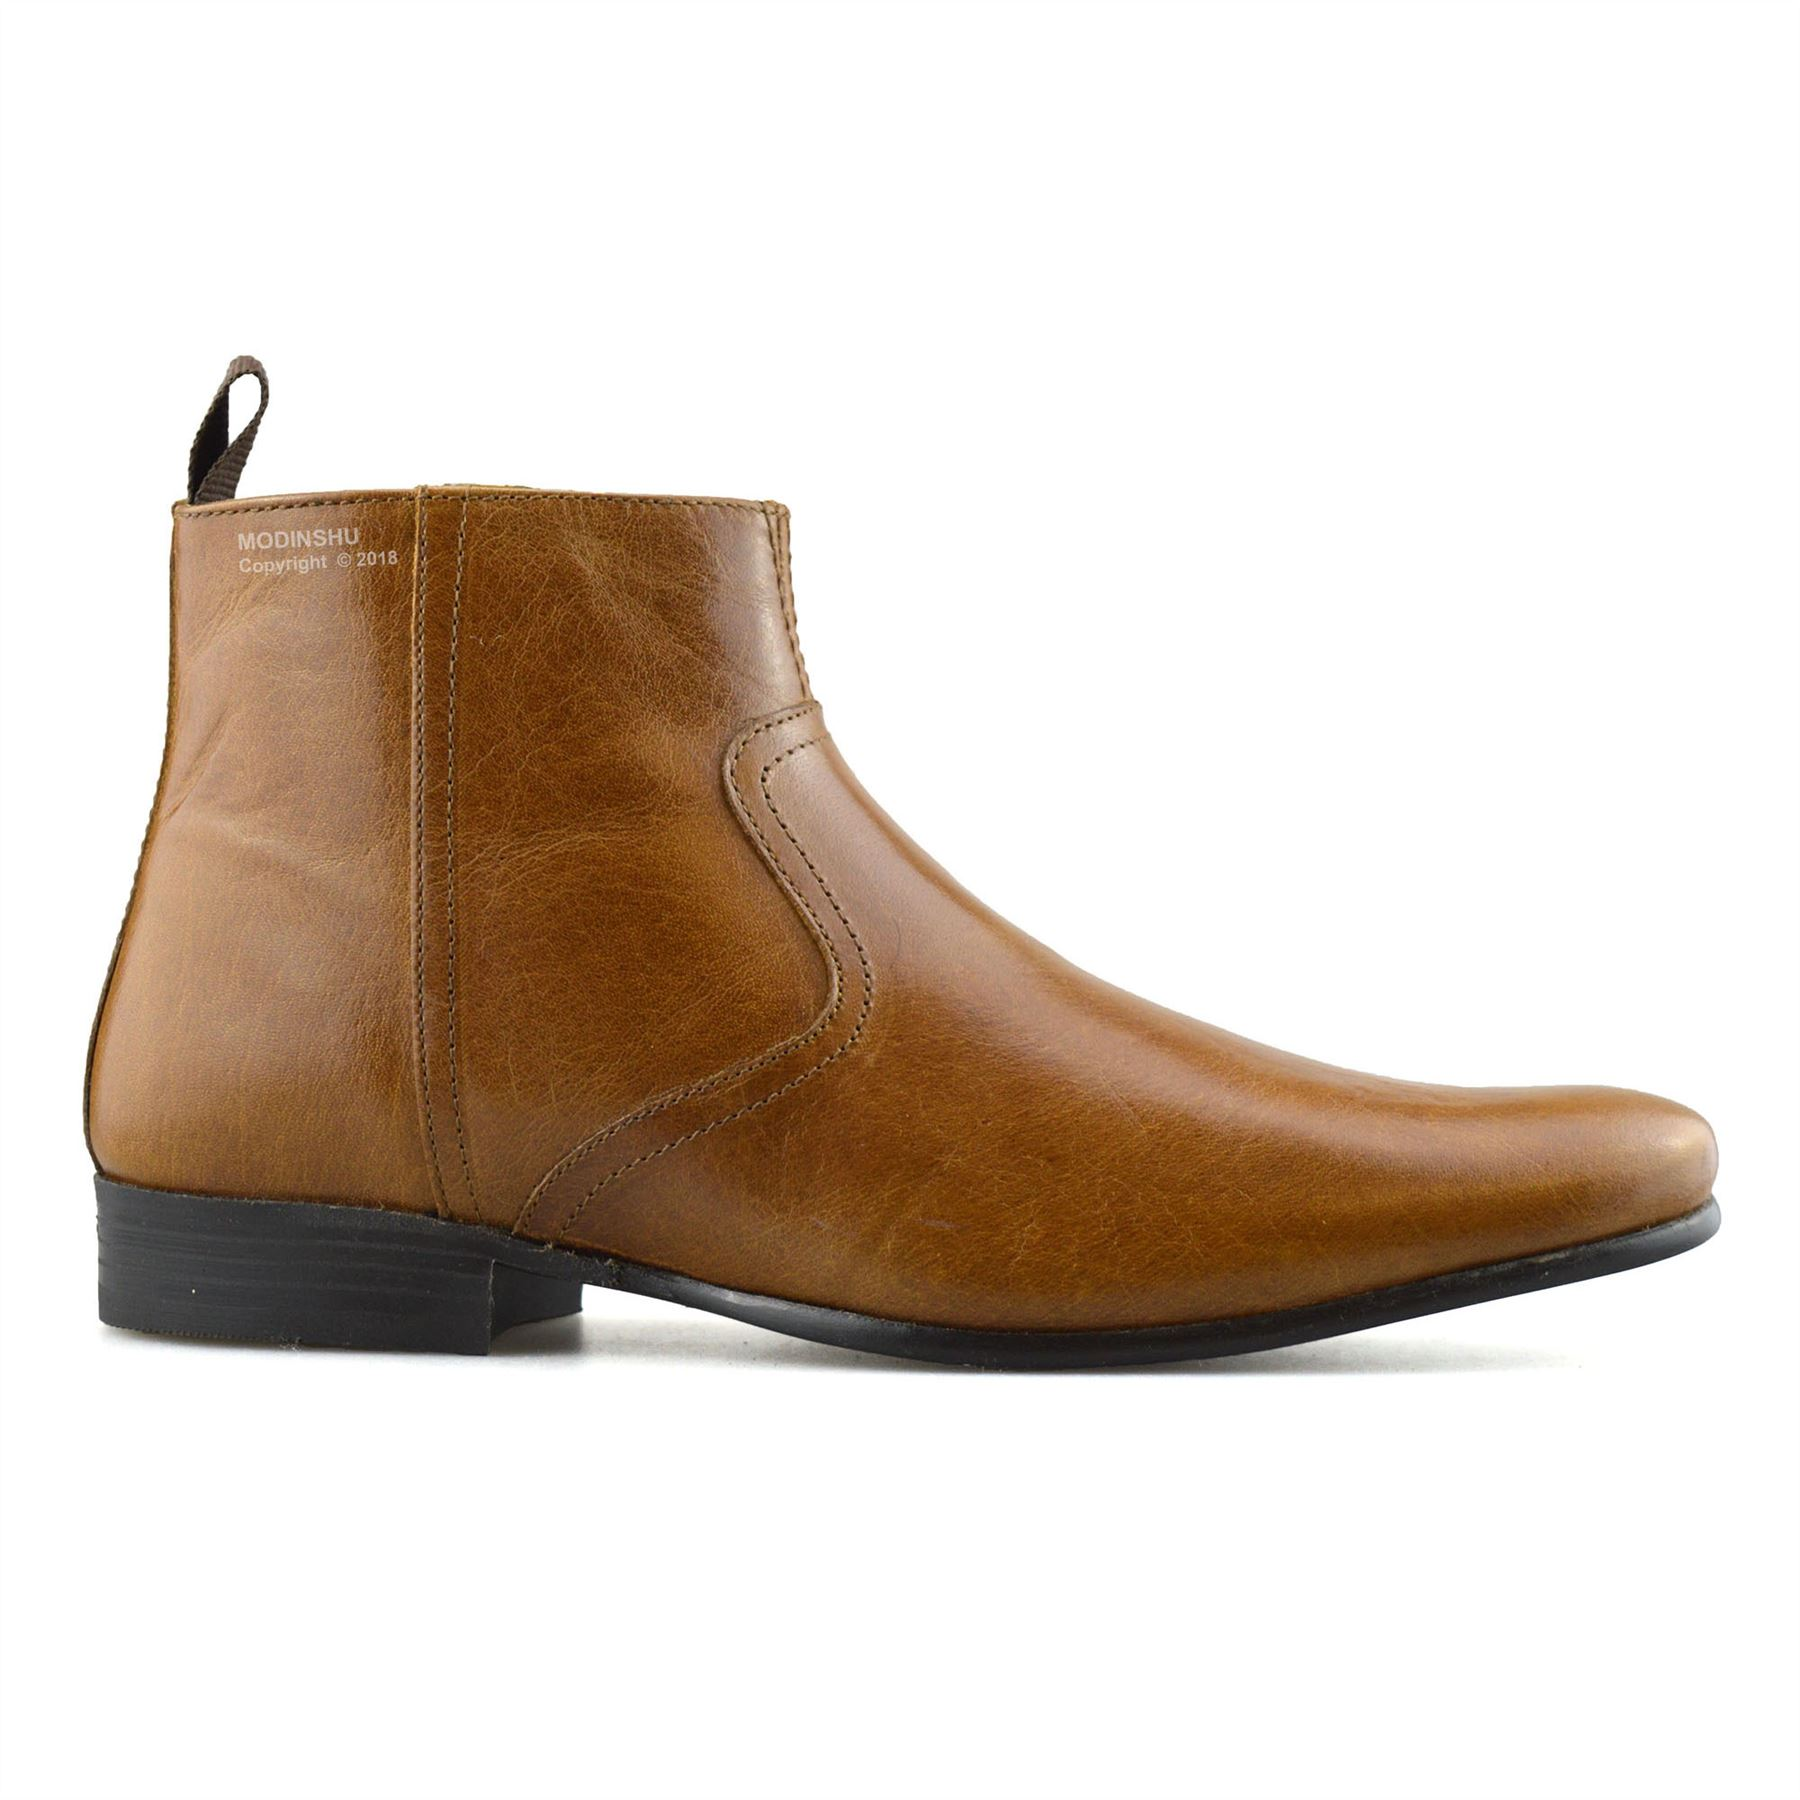 Mens-New-Leather-Zip-Up-Smart-Formal-Chelsea-Dealer-Work-Ankle-Boots-Shoes-Size thumbnail 23